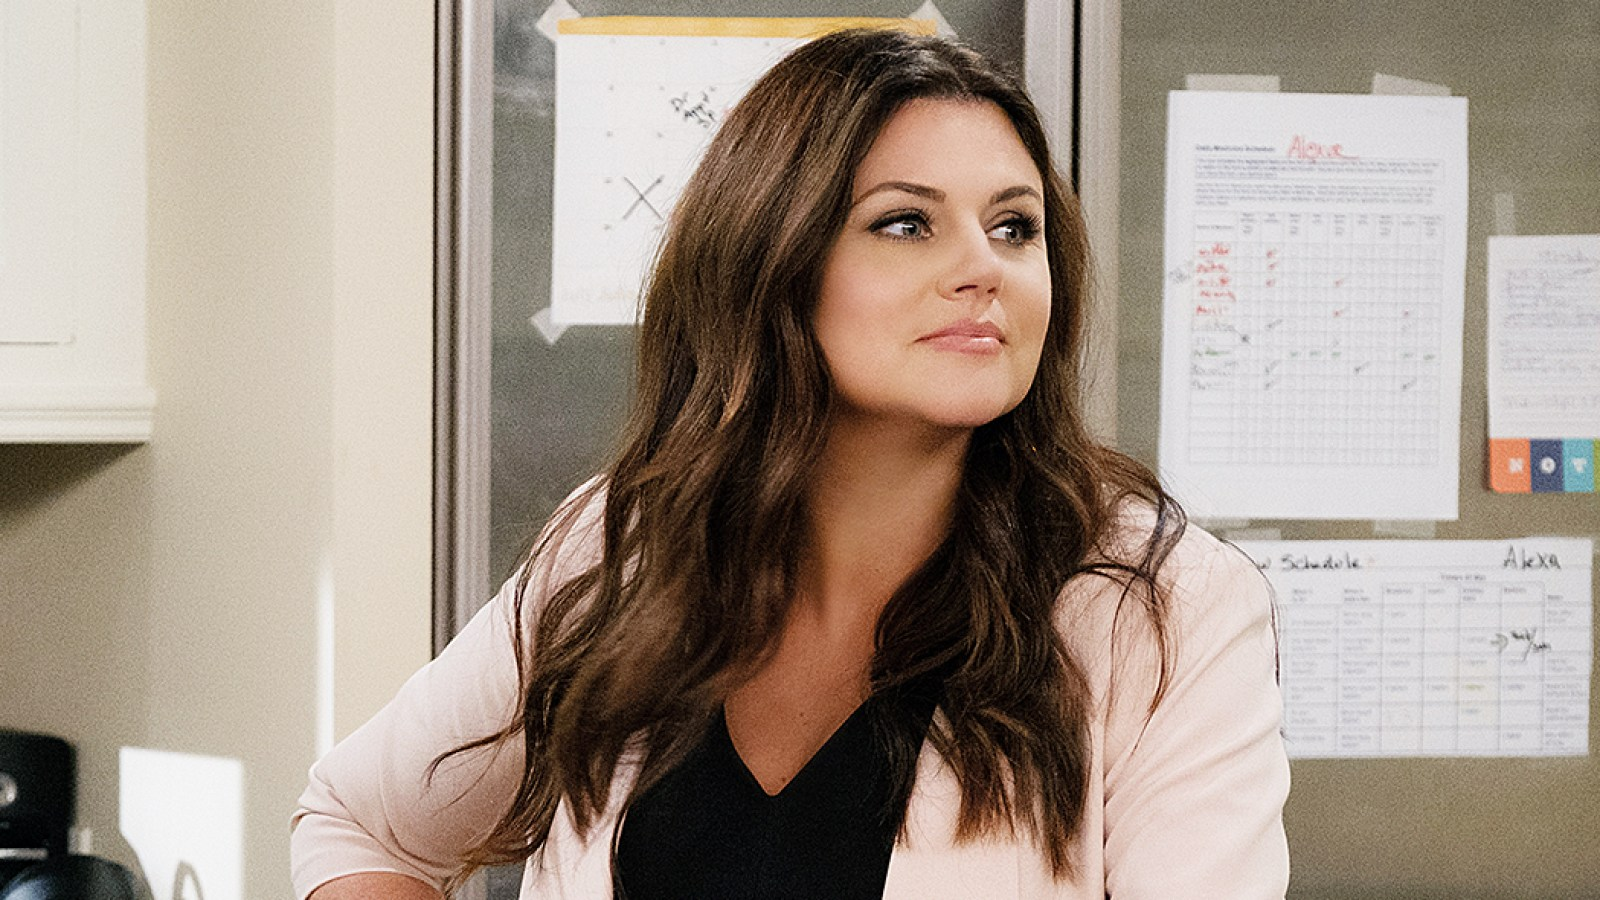 bf417e31240c9 Why Tiffani Thiessen Sees Her Younger Self in Netflix's 'Alexa & Katie'